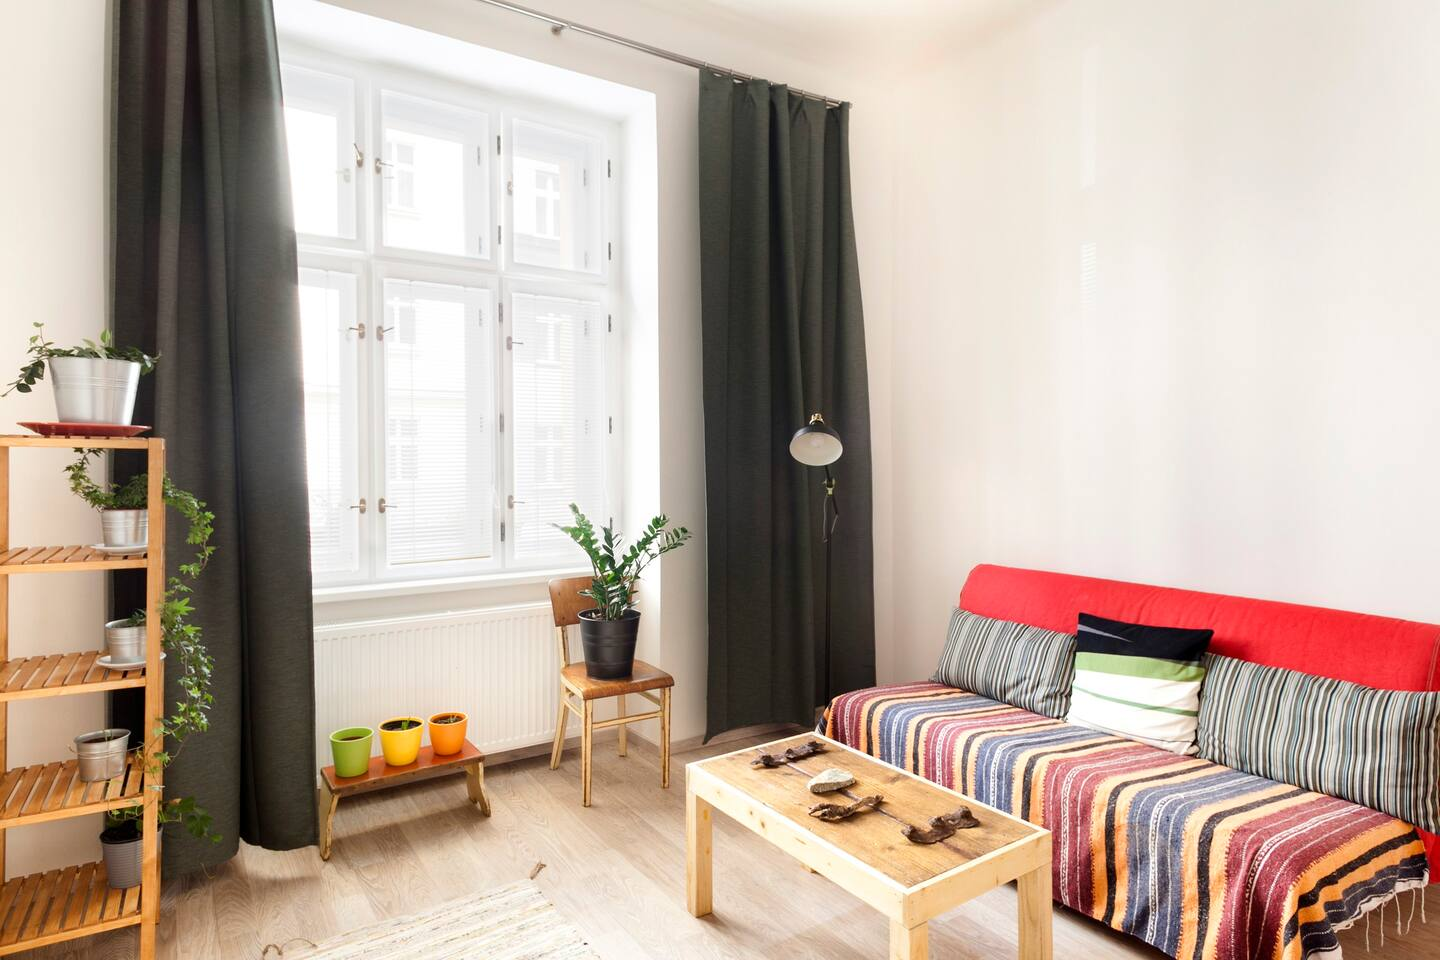 Private One-Bedroom Park Apartment